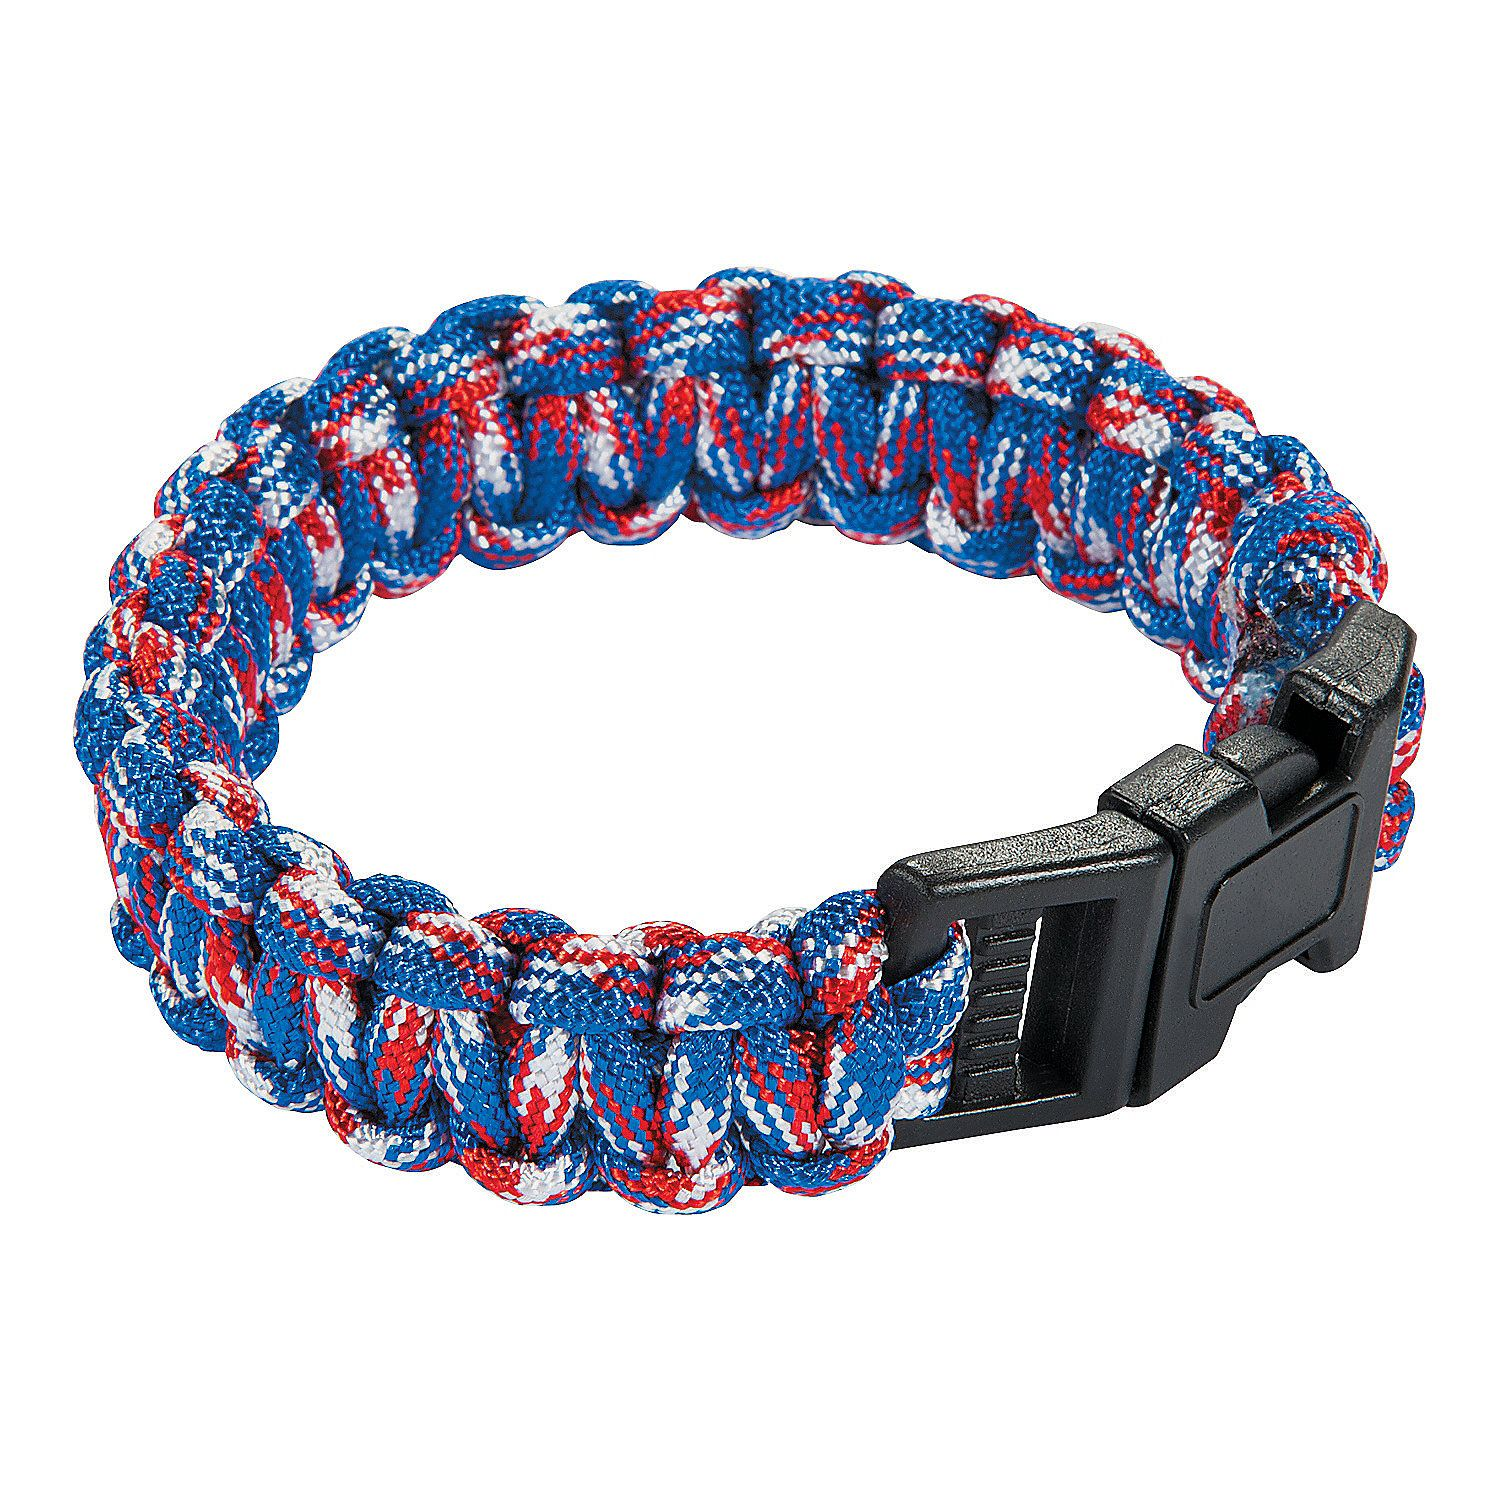 Adult's Patriotic Paracord Bracelets - OrientalTrading.com  Purchase for $1.35, sell for $5 or $10